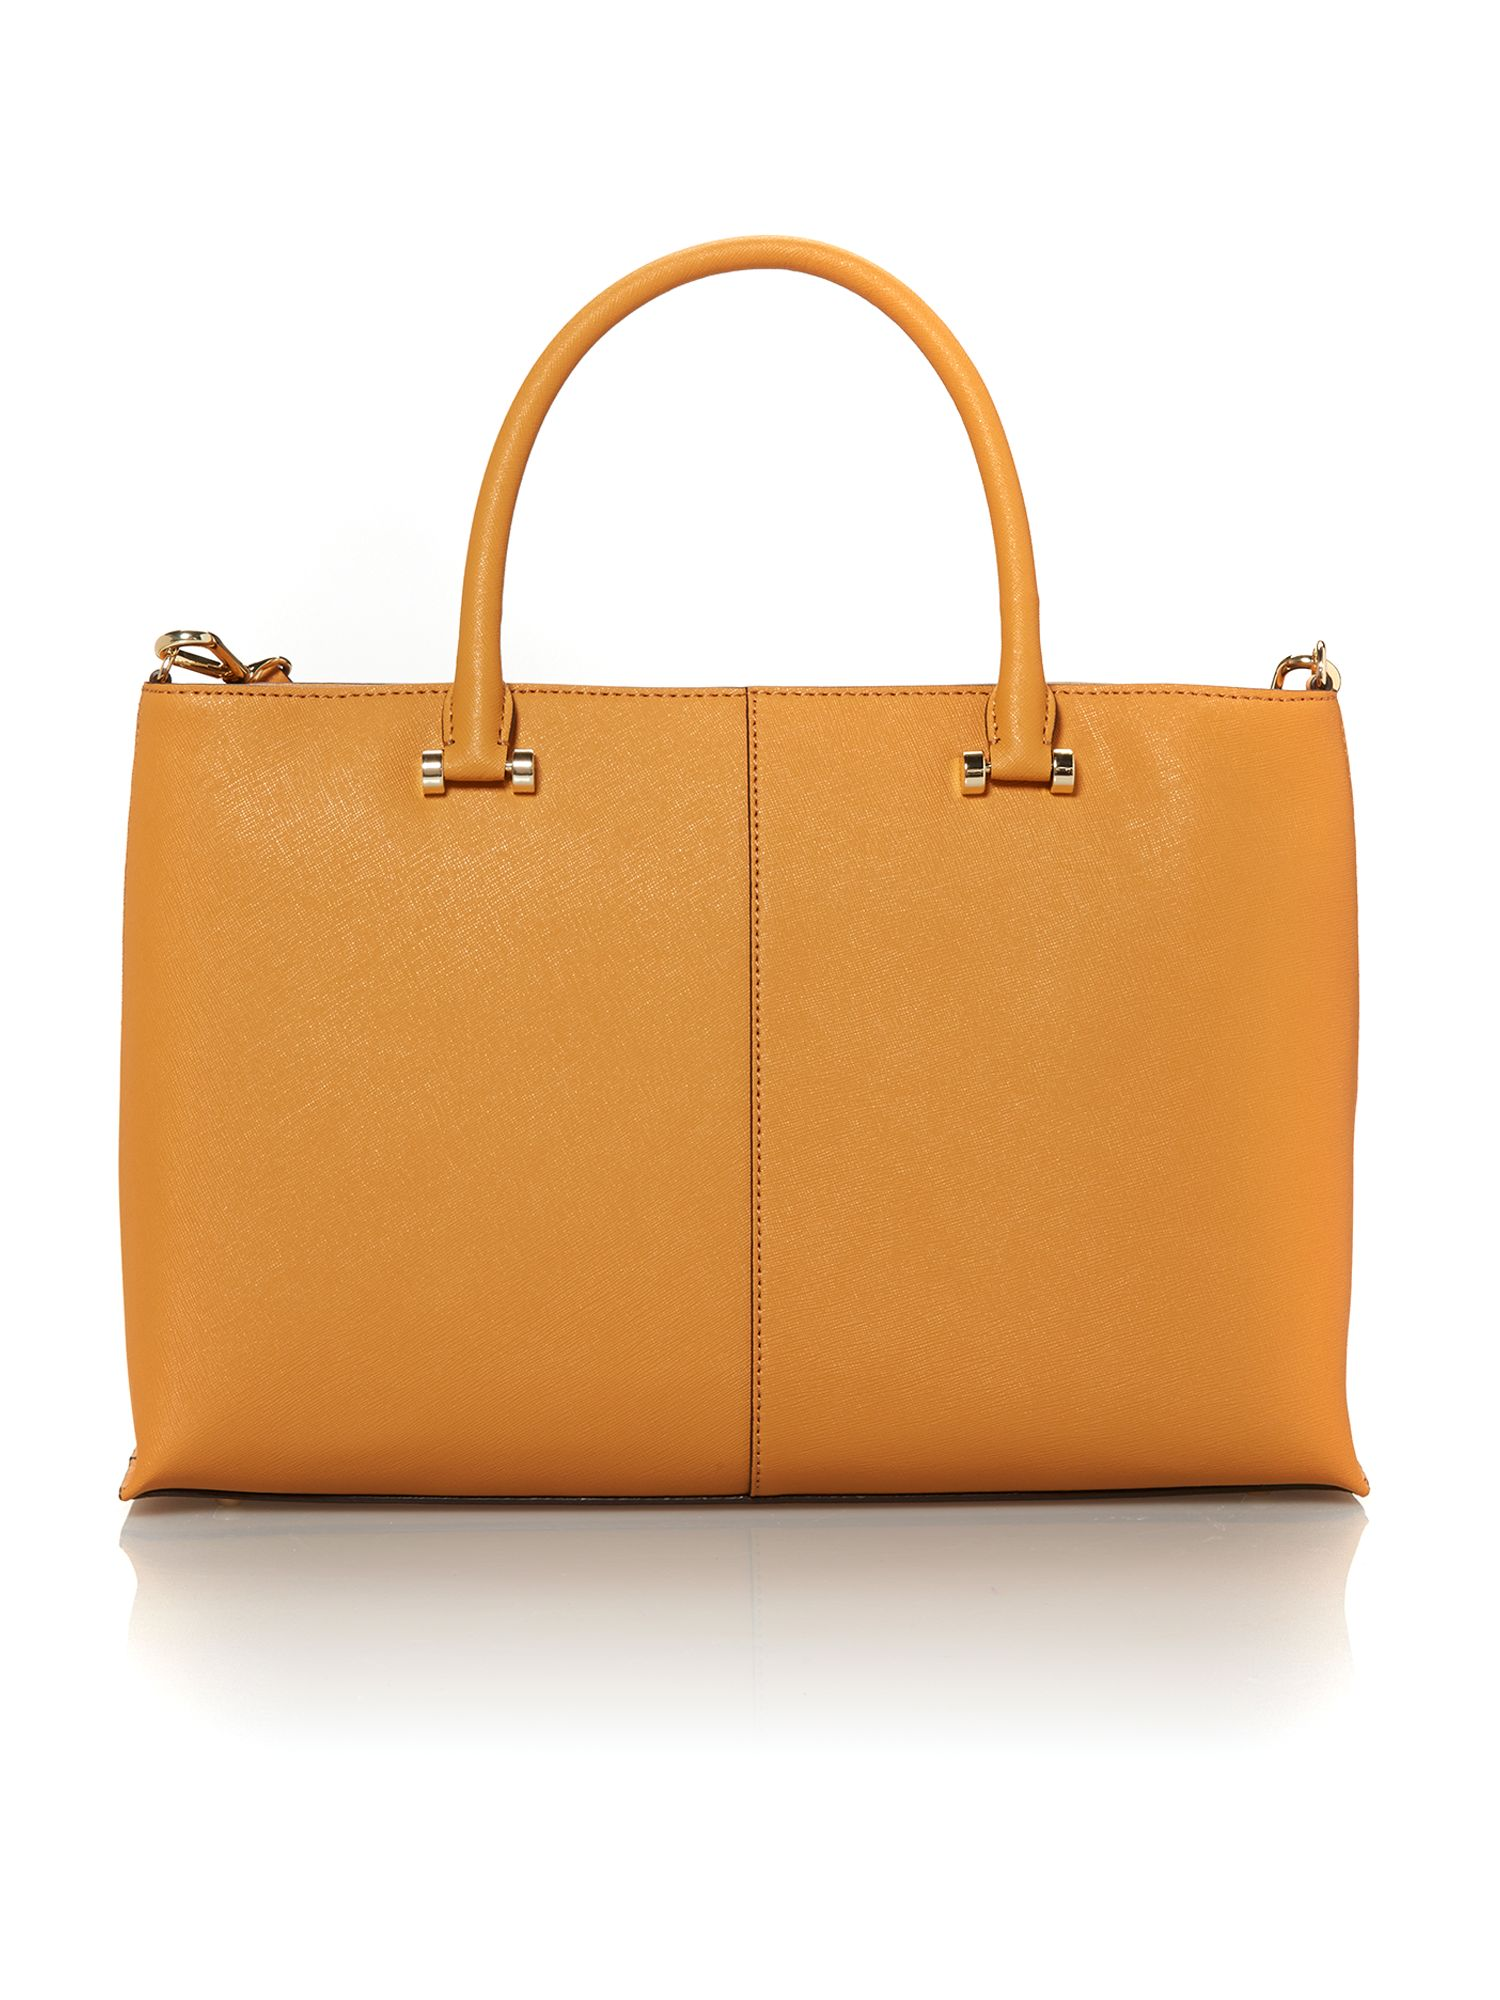 Saffiano tan medium tote bag